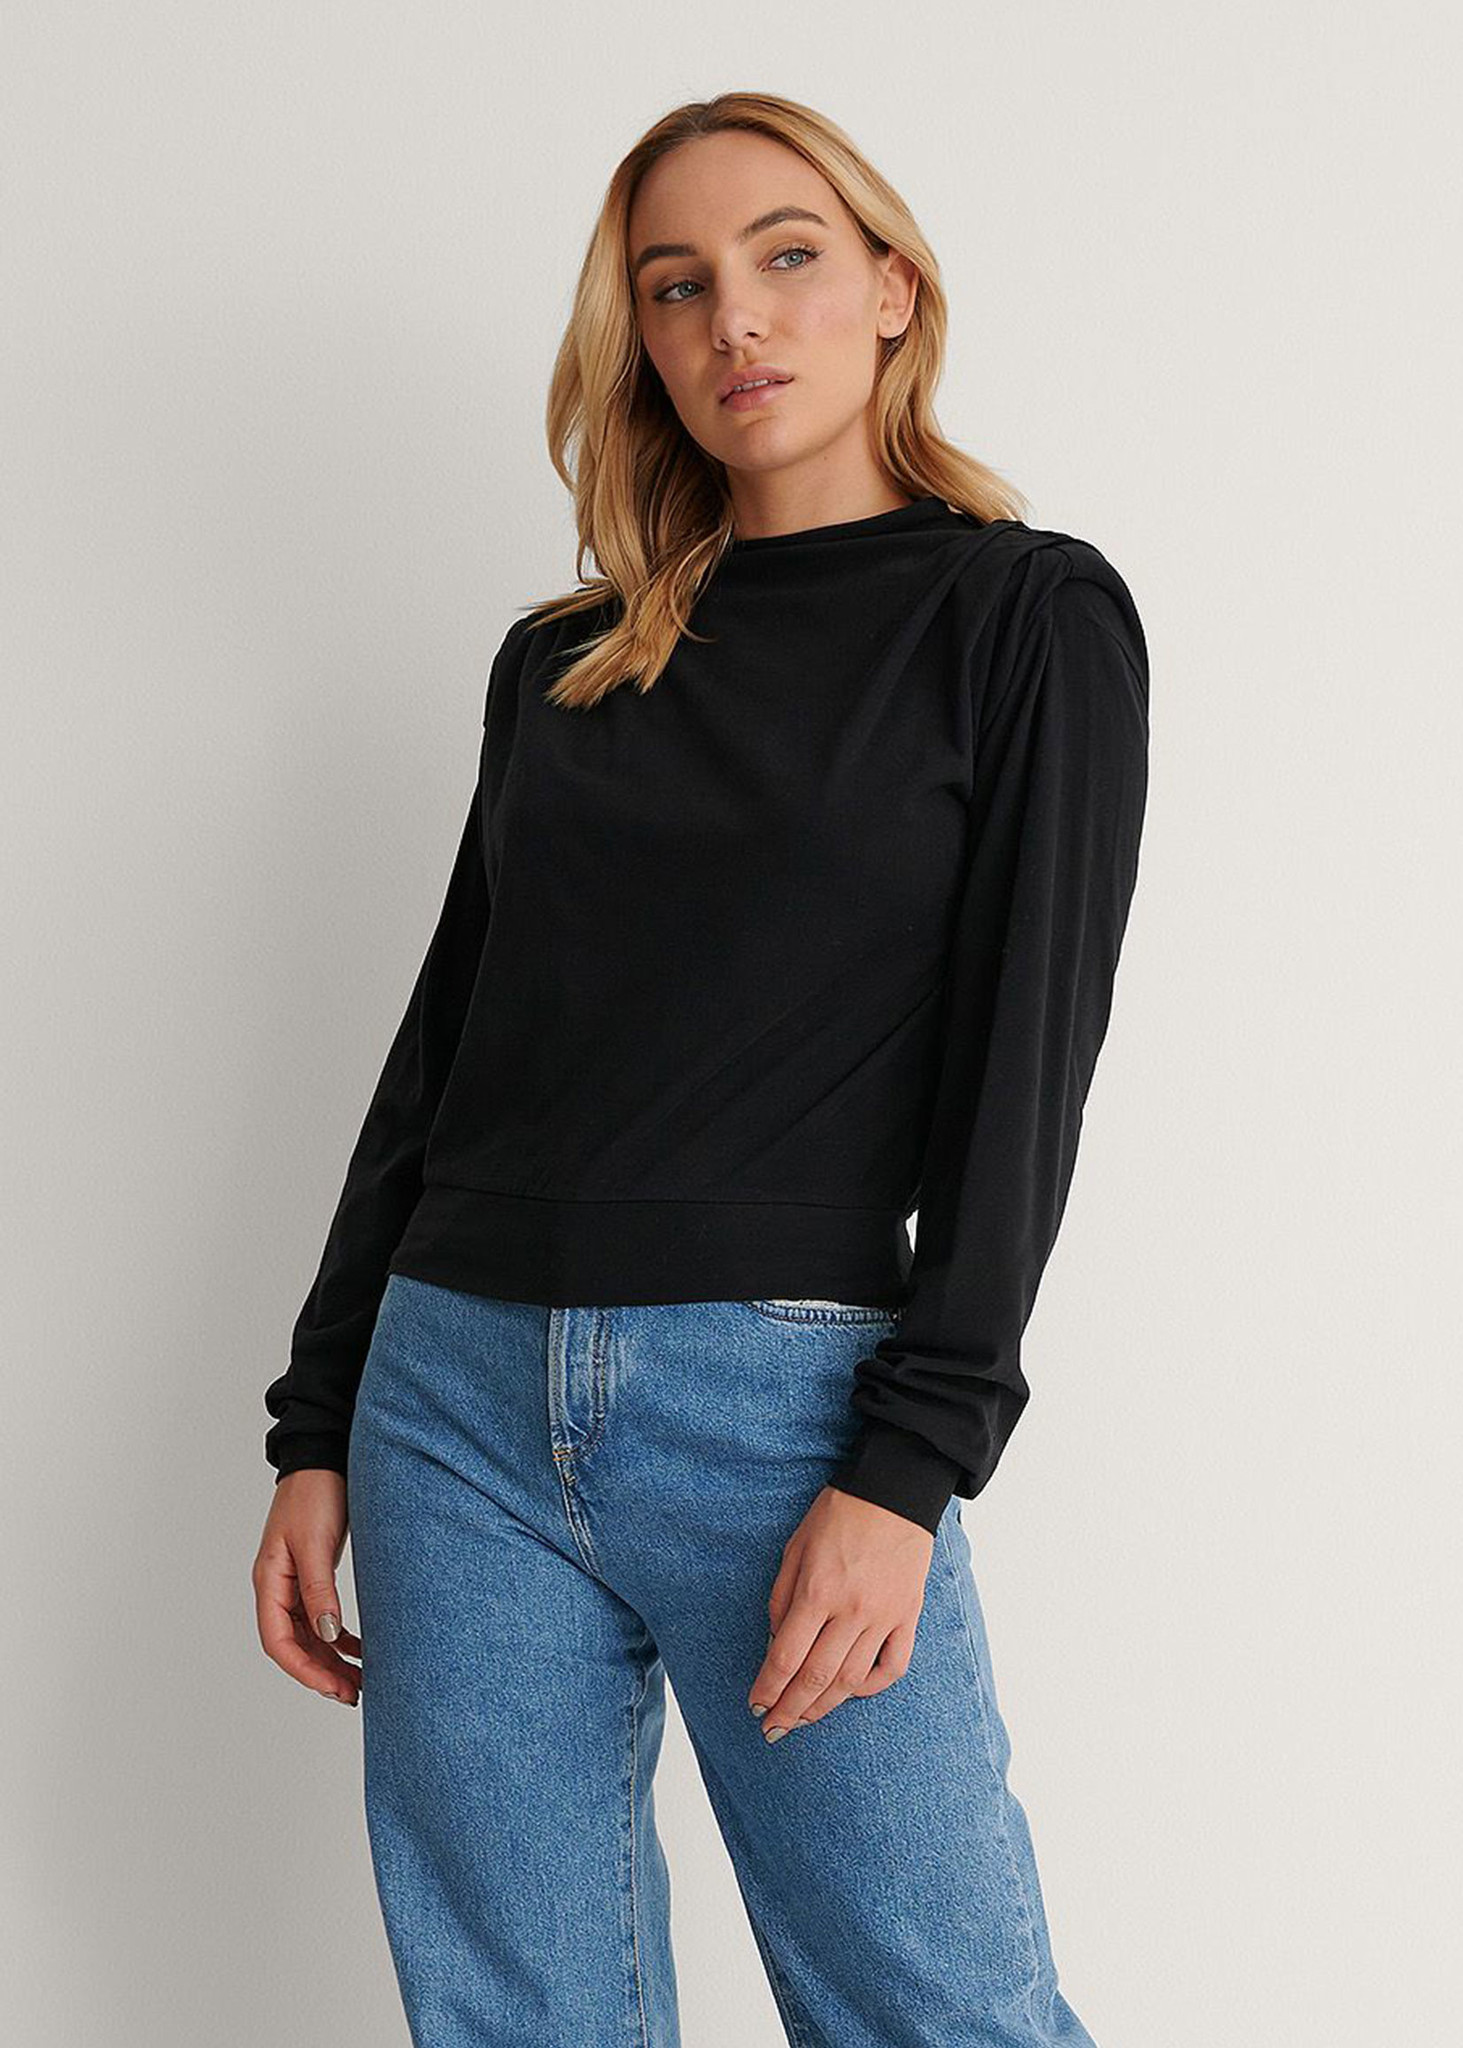 Pleated Detail Sweater Black-2